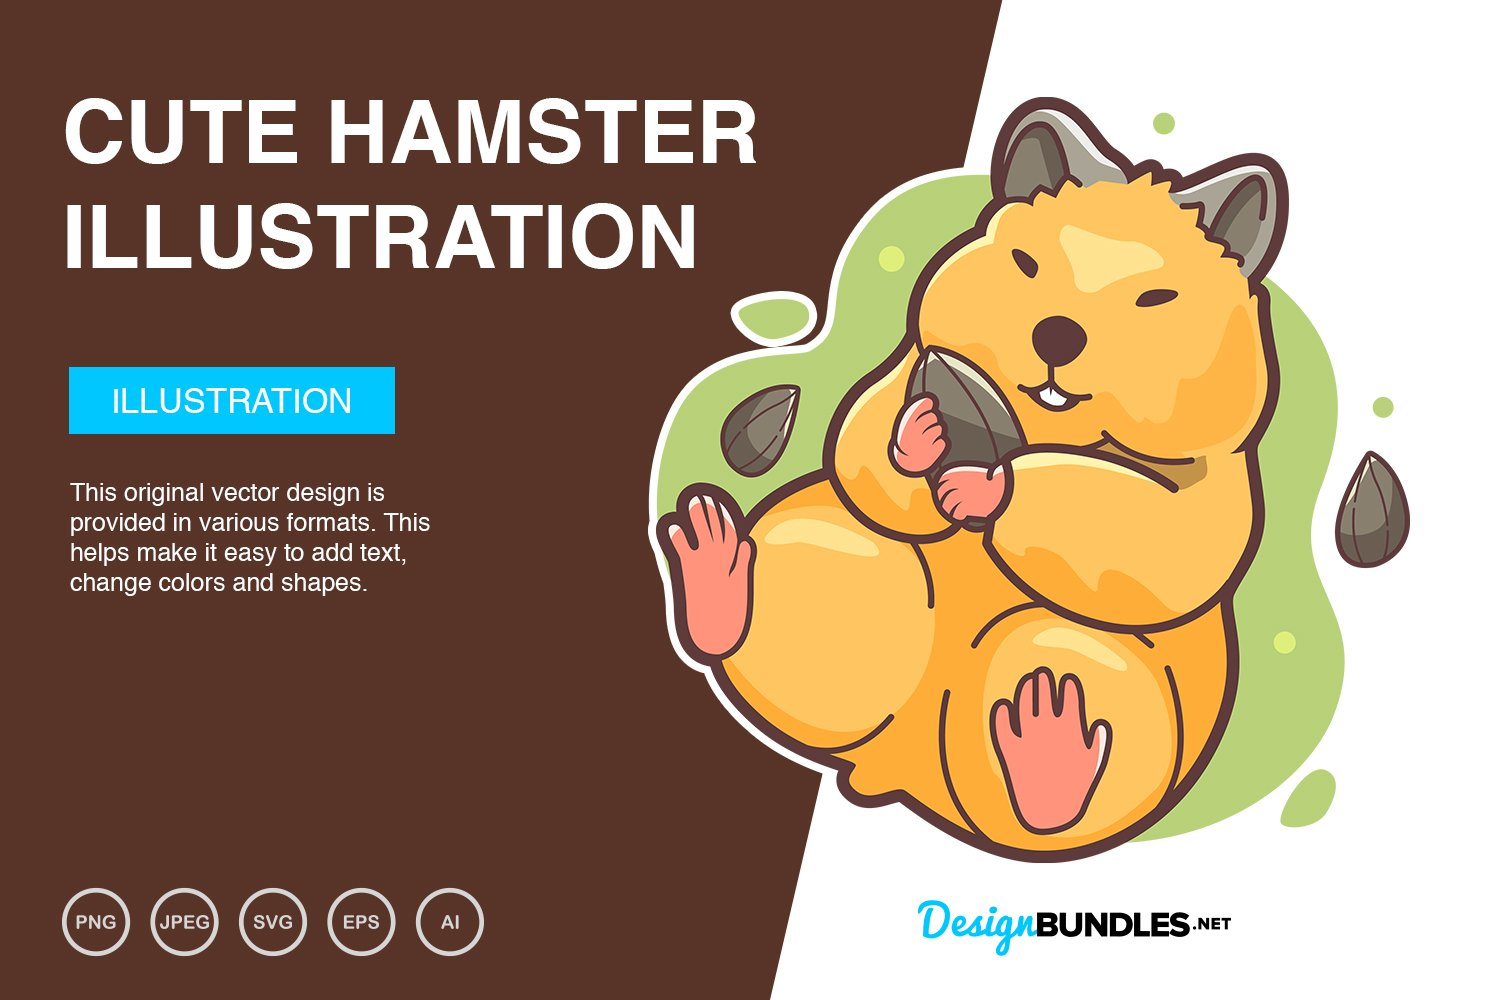 Cute Hamster Vector Illustration example image 1